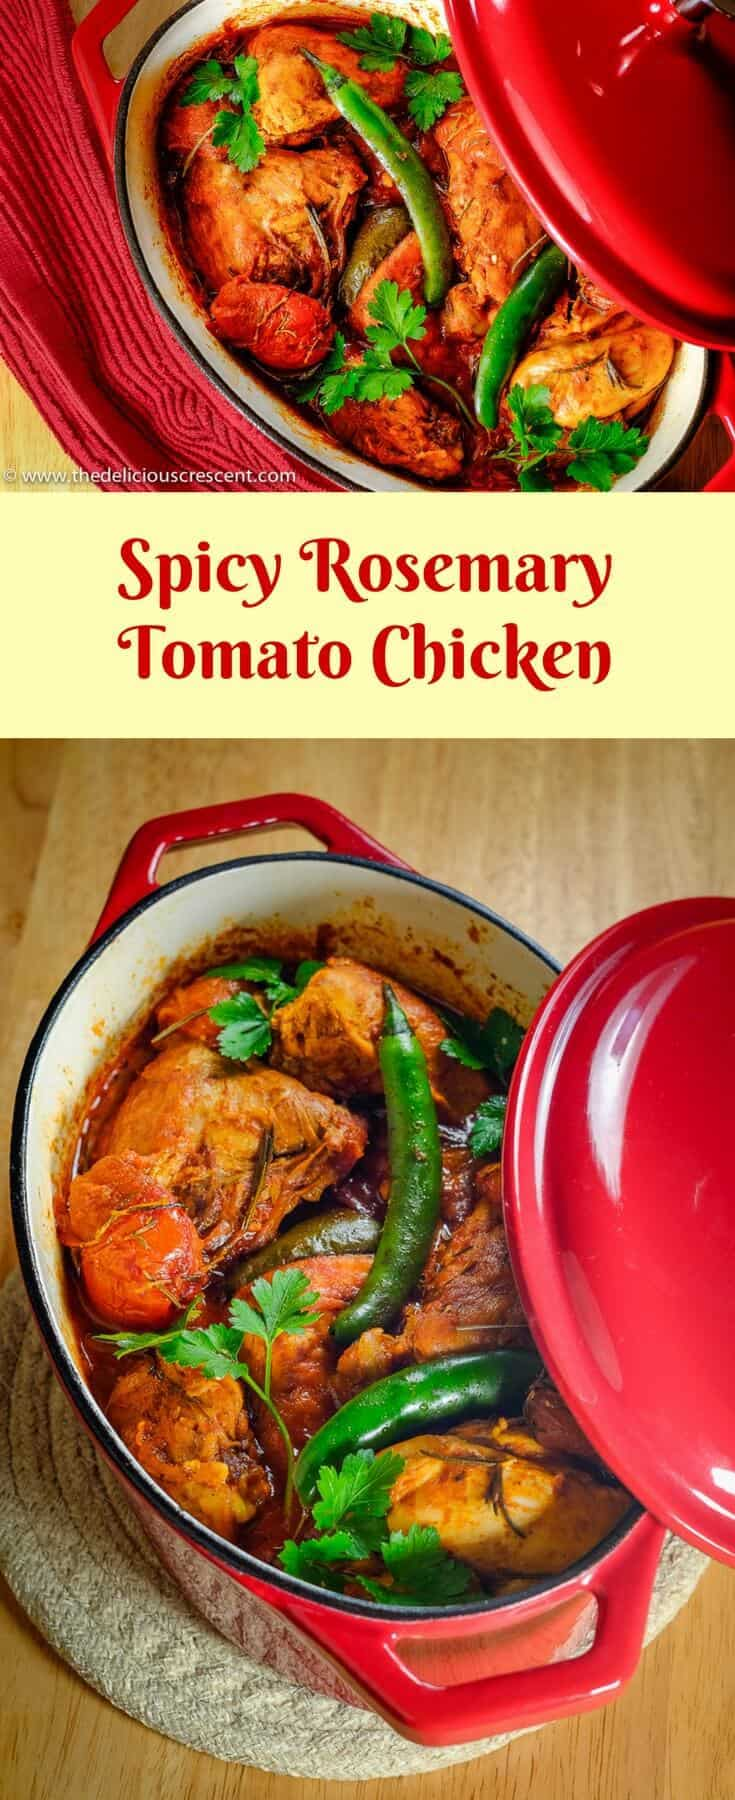 Spicy Rosemary Tomato Chicken - Rosemary, aromatic eastern spices and hot peppers in a rich tomato gravy make a great flavor combination for tasty chicken stew!! #stew #glutenfree #lowcarb #dairyfree #eggfree #tomato #chicken #nutfree